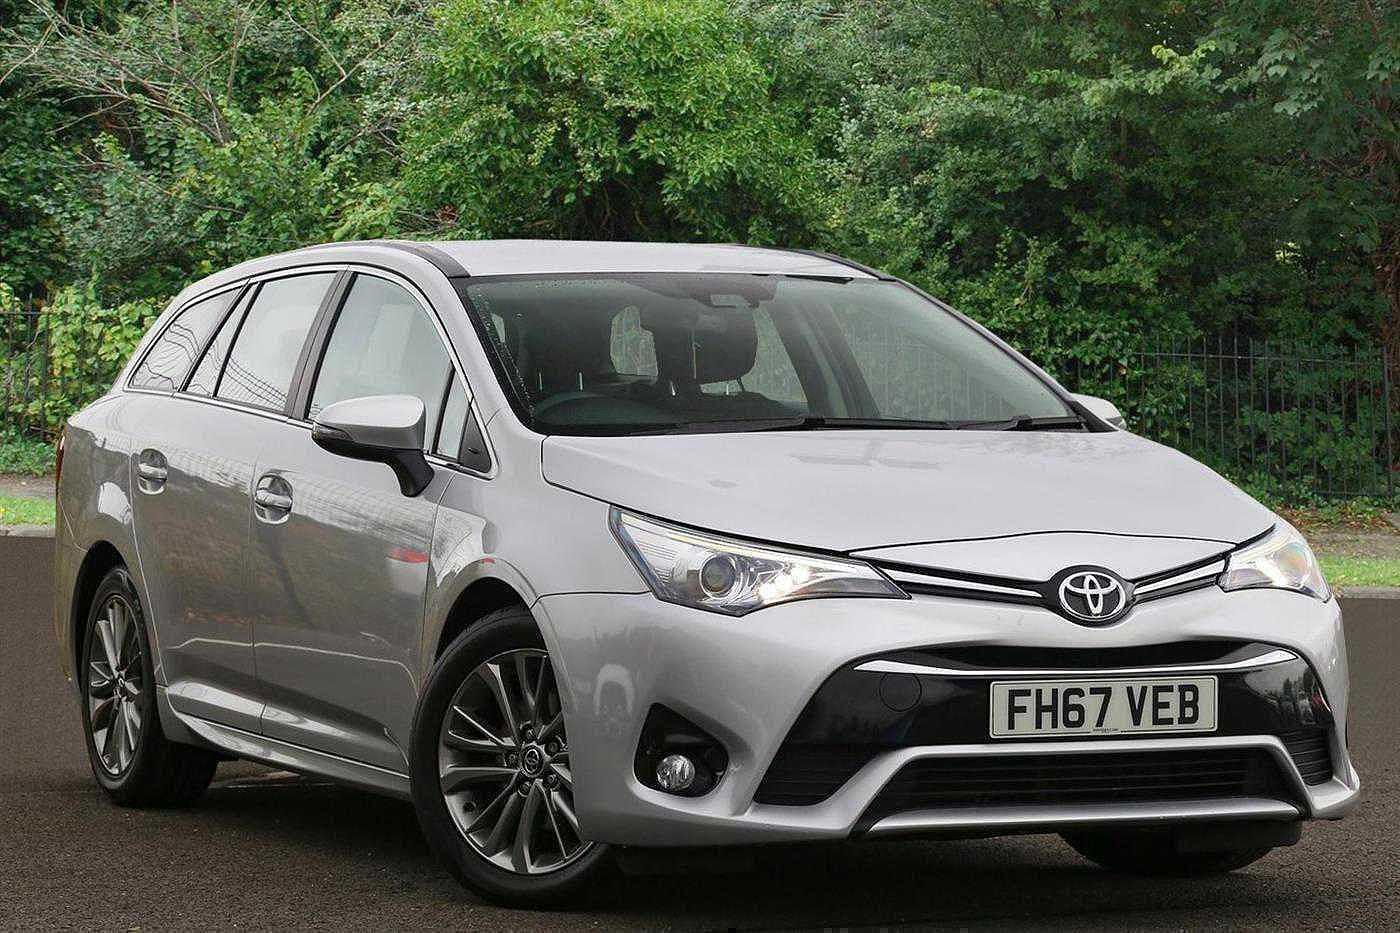 Toyota Avensis 1.6D Business Edition 5dr Estate Diesel Silver